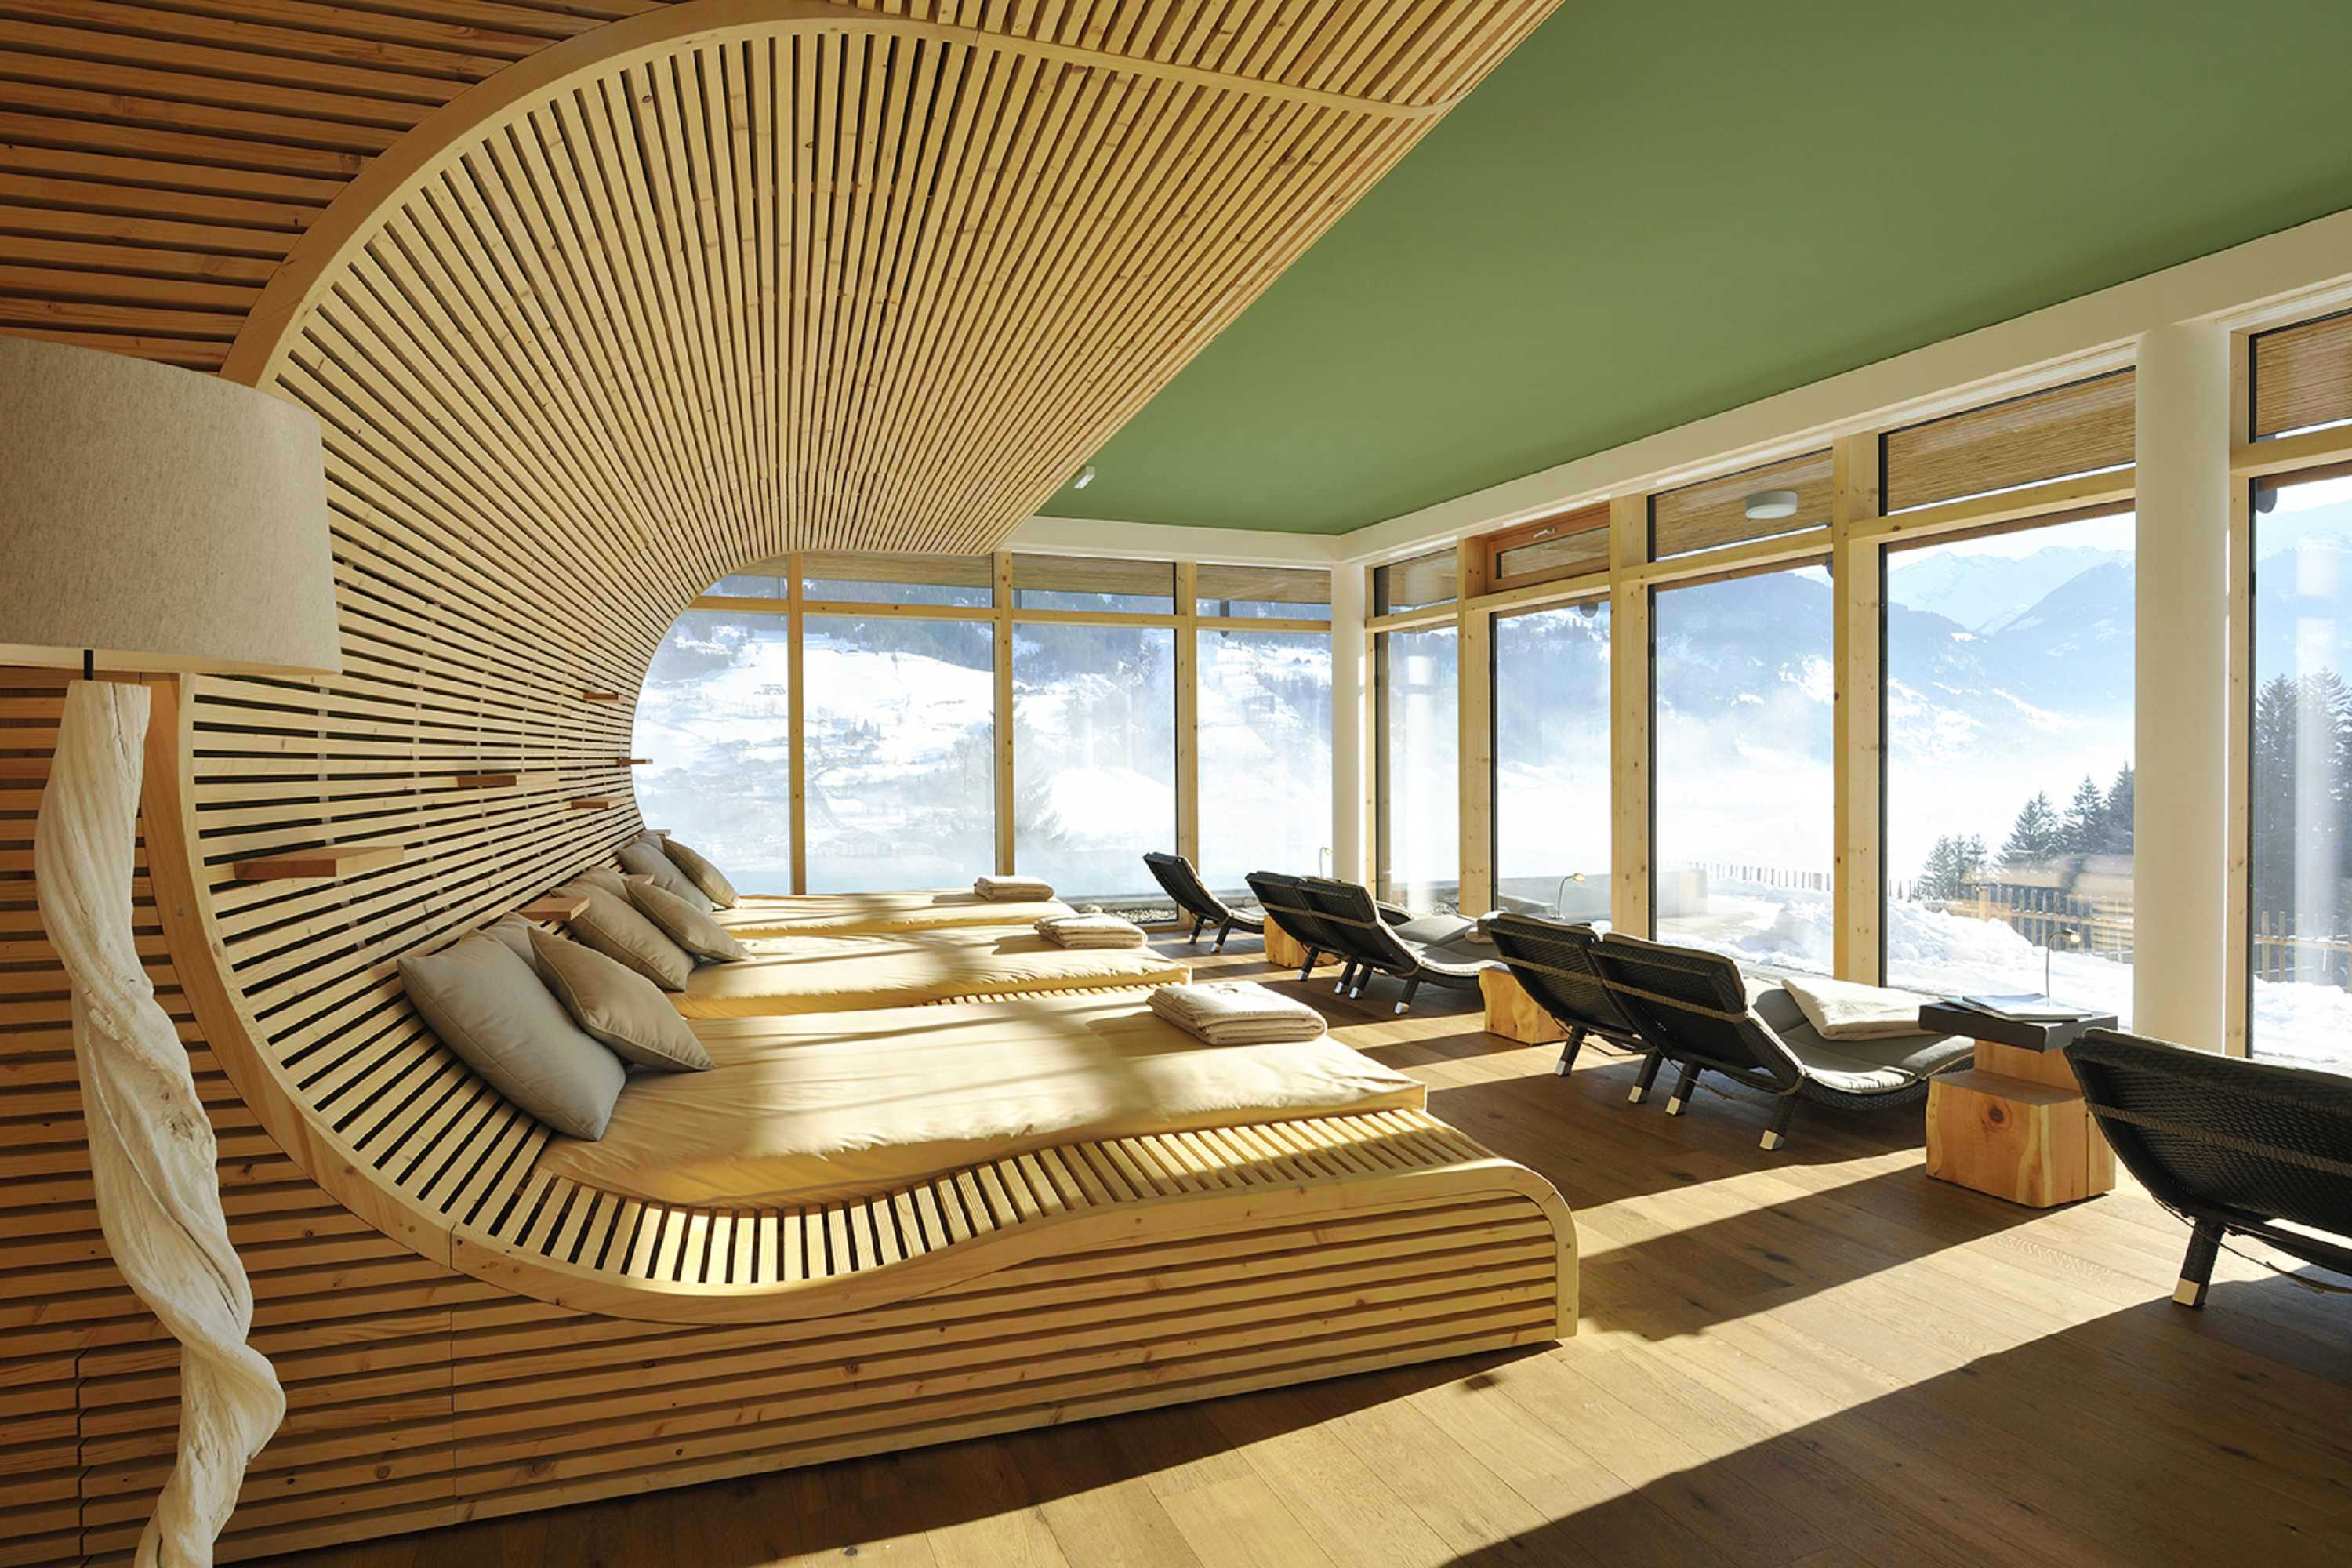 Wellness during your Gastein holiday